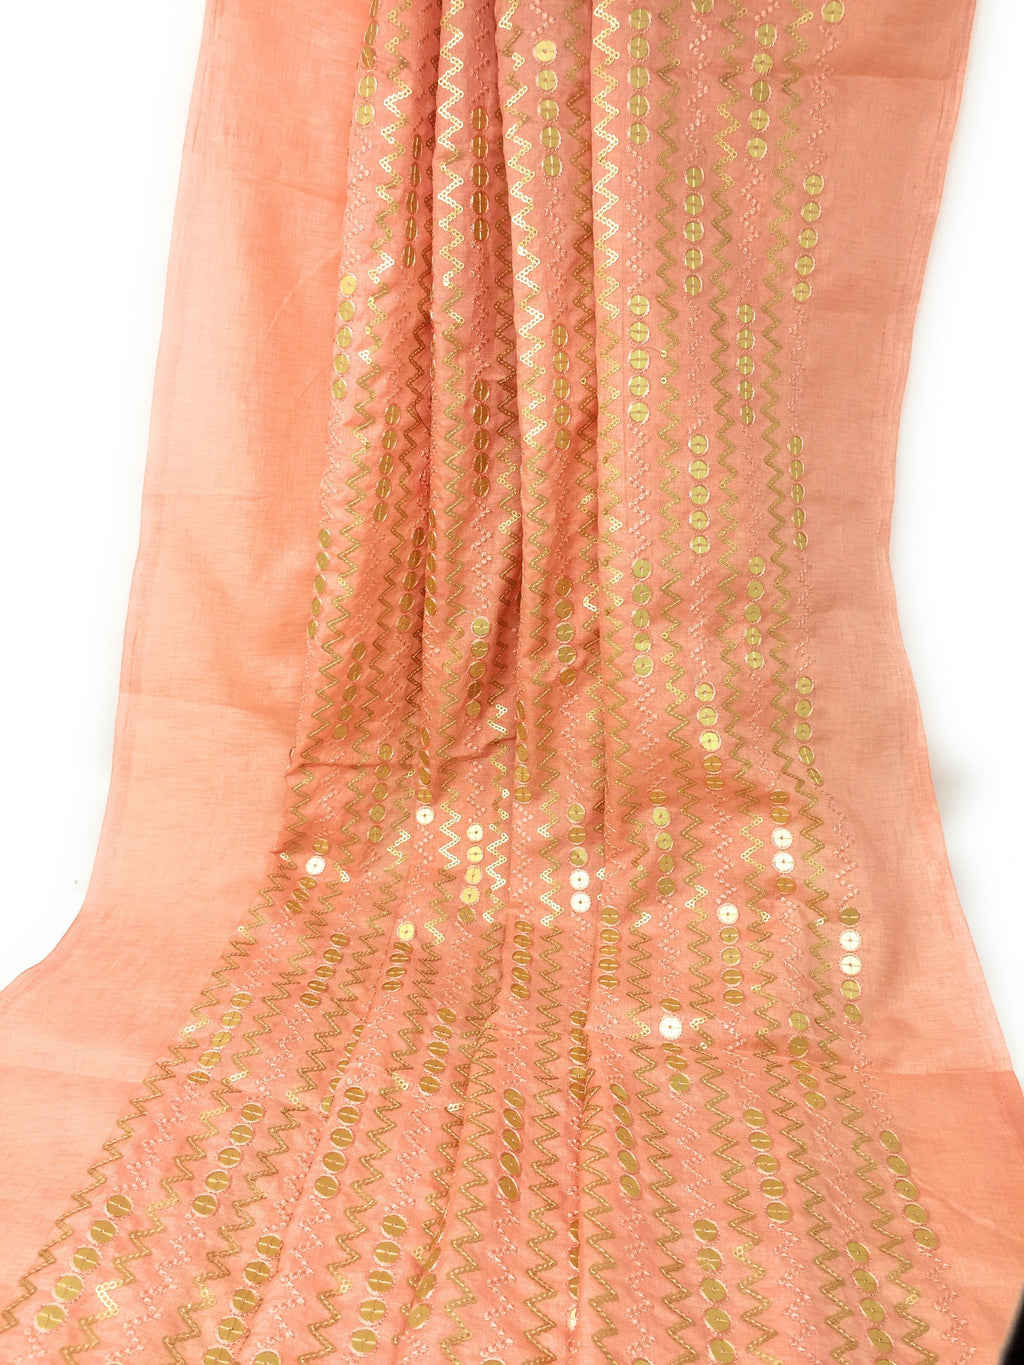 Sequins Embroidery On Peach Silk Fabric In Geometric Pattern